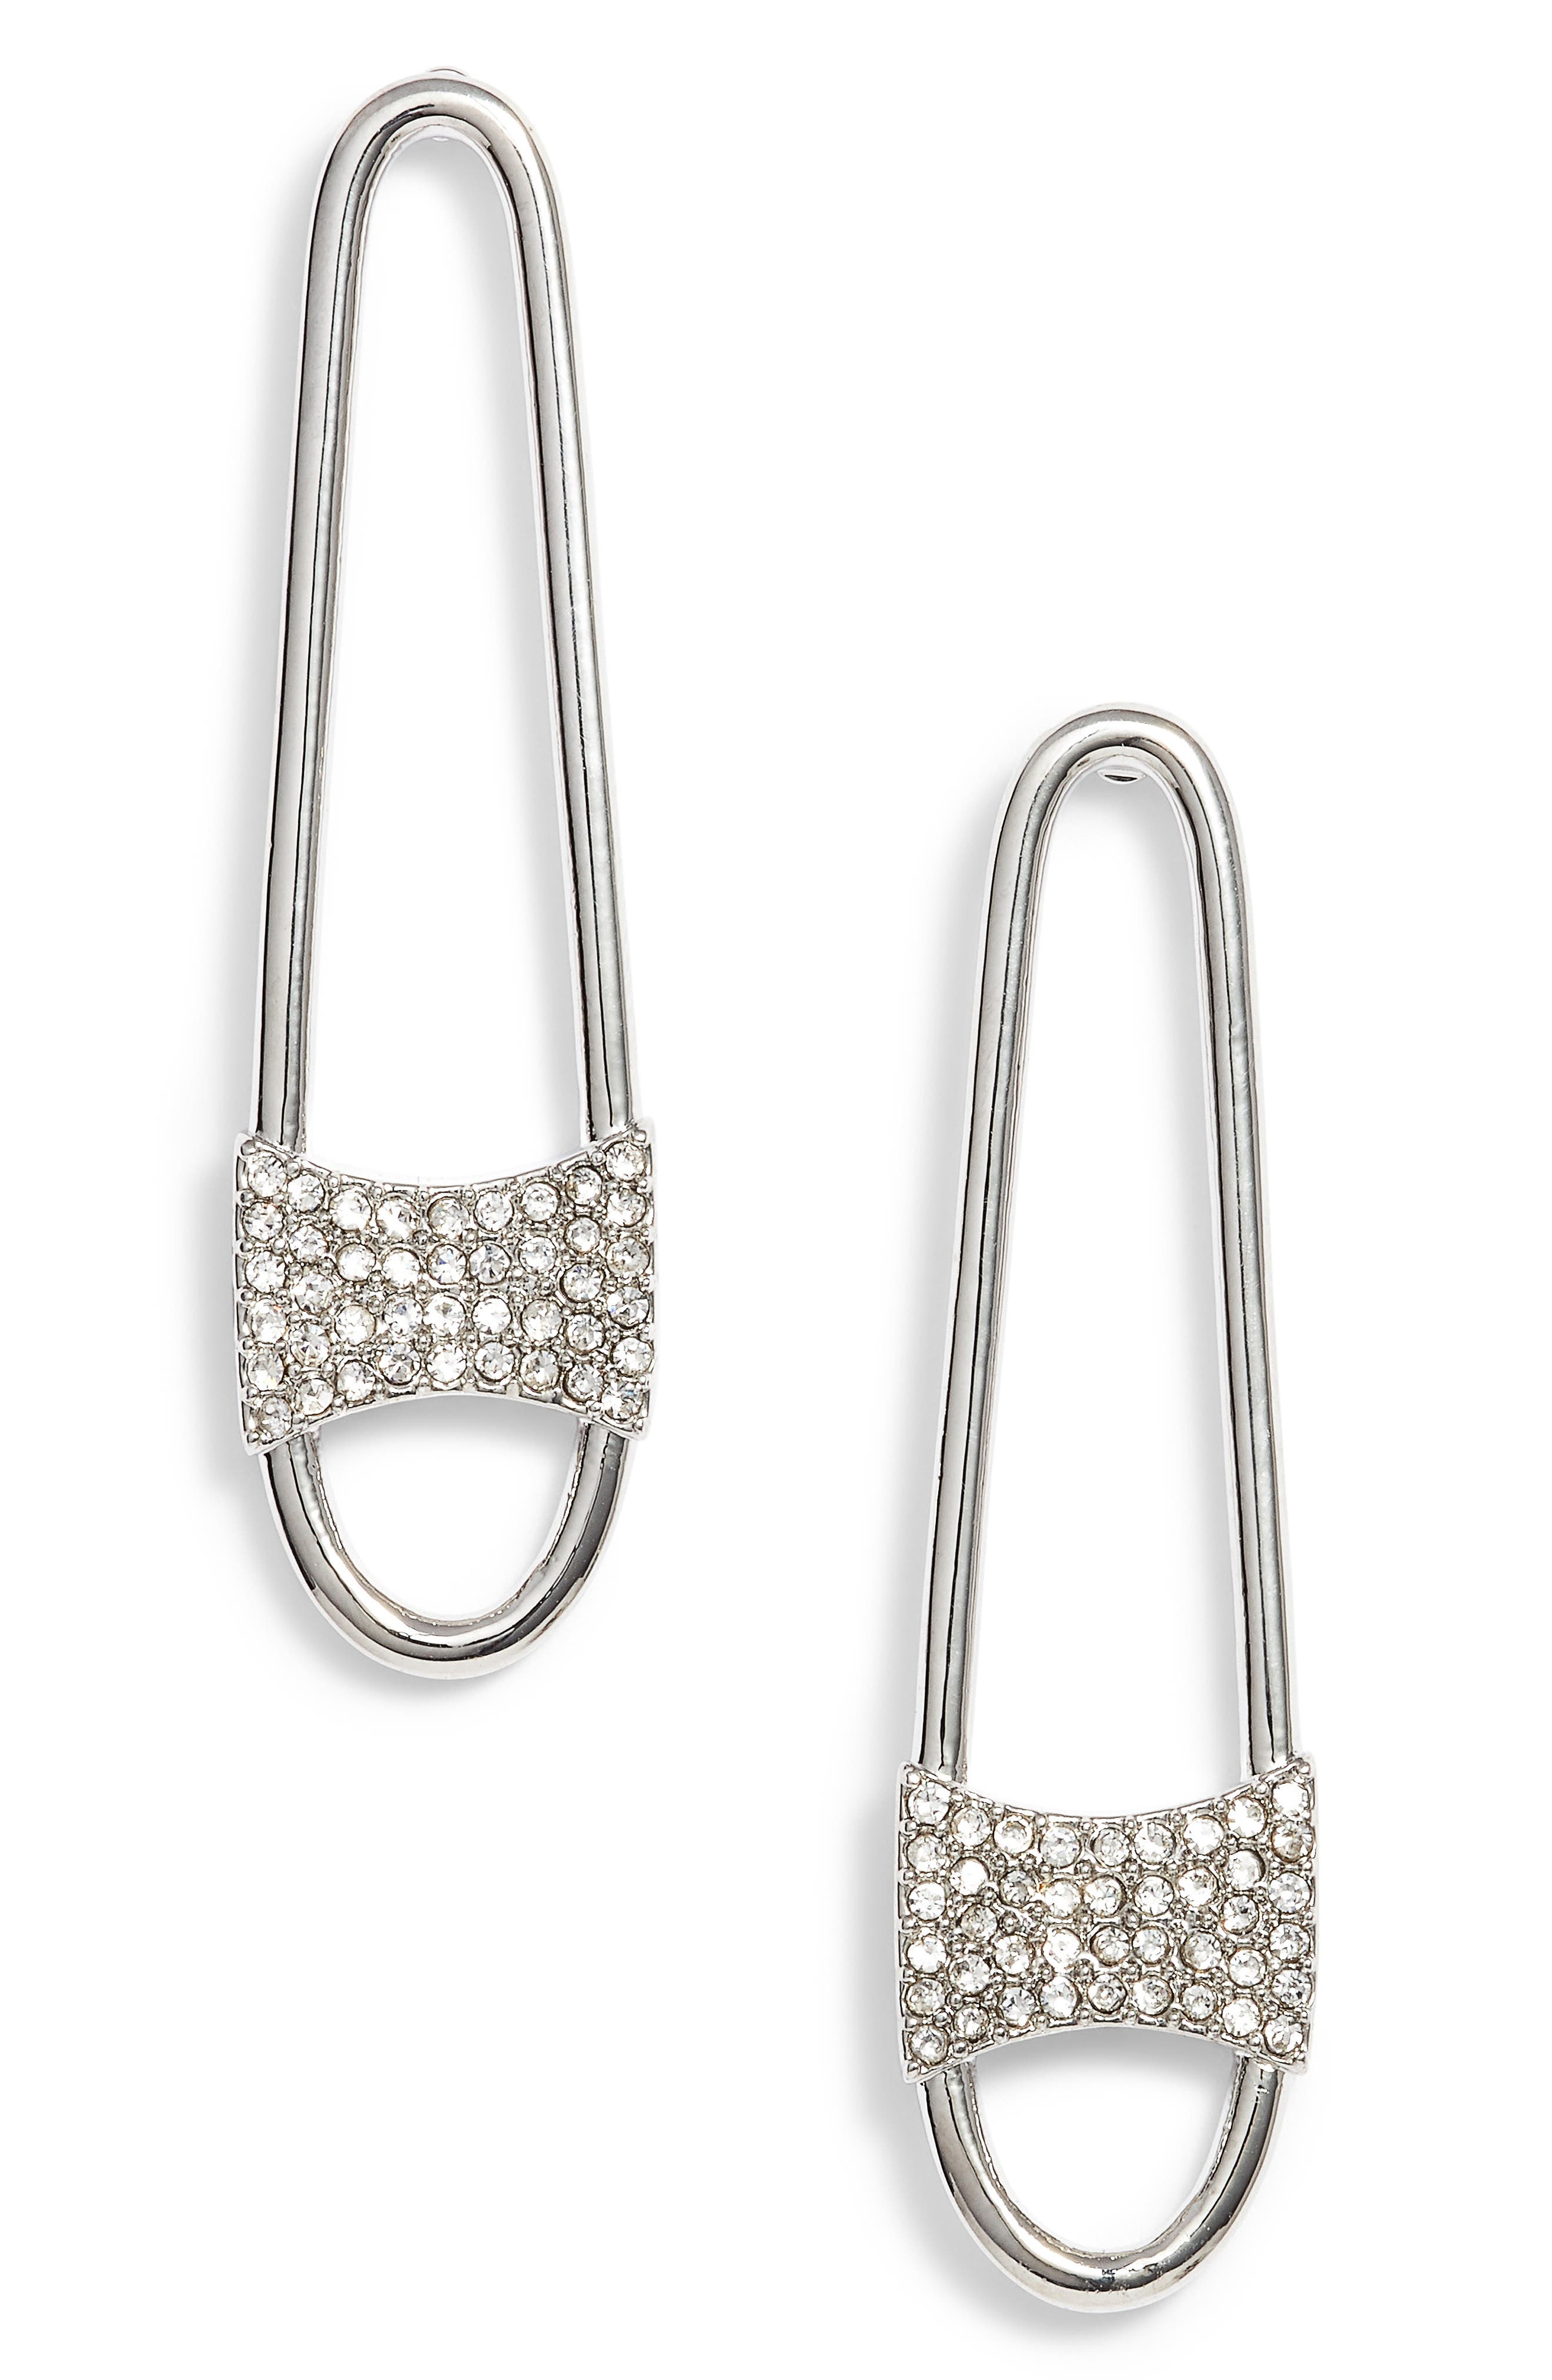 Pave Safety Pin Earrings,                             Main thumbnail 1, color,                             040